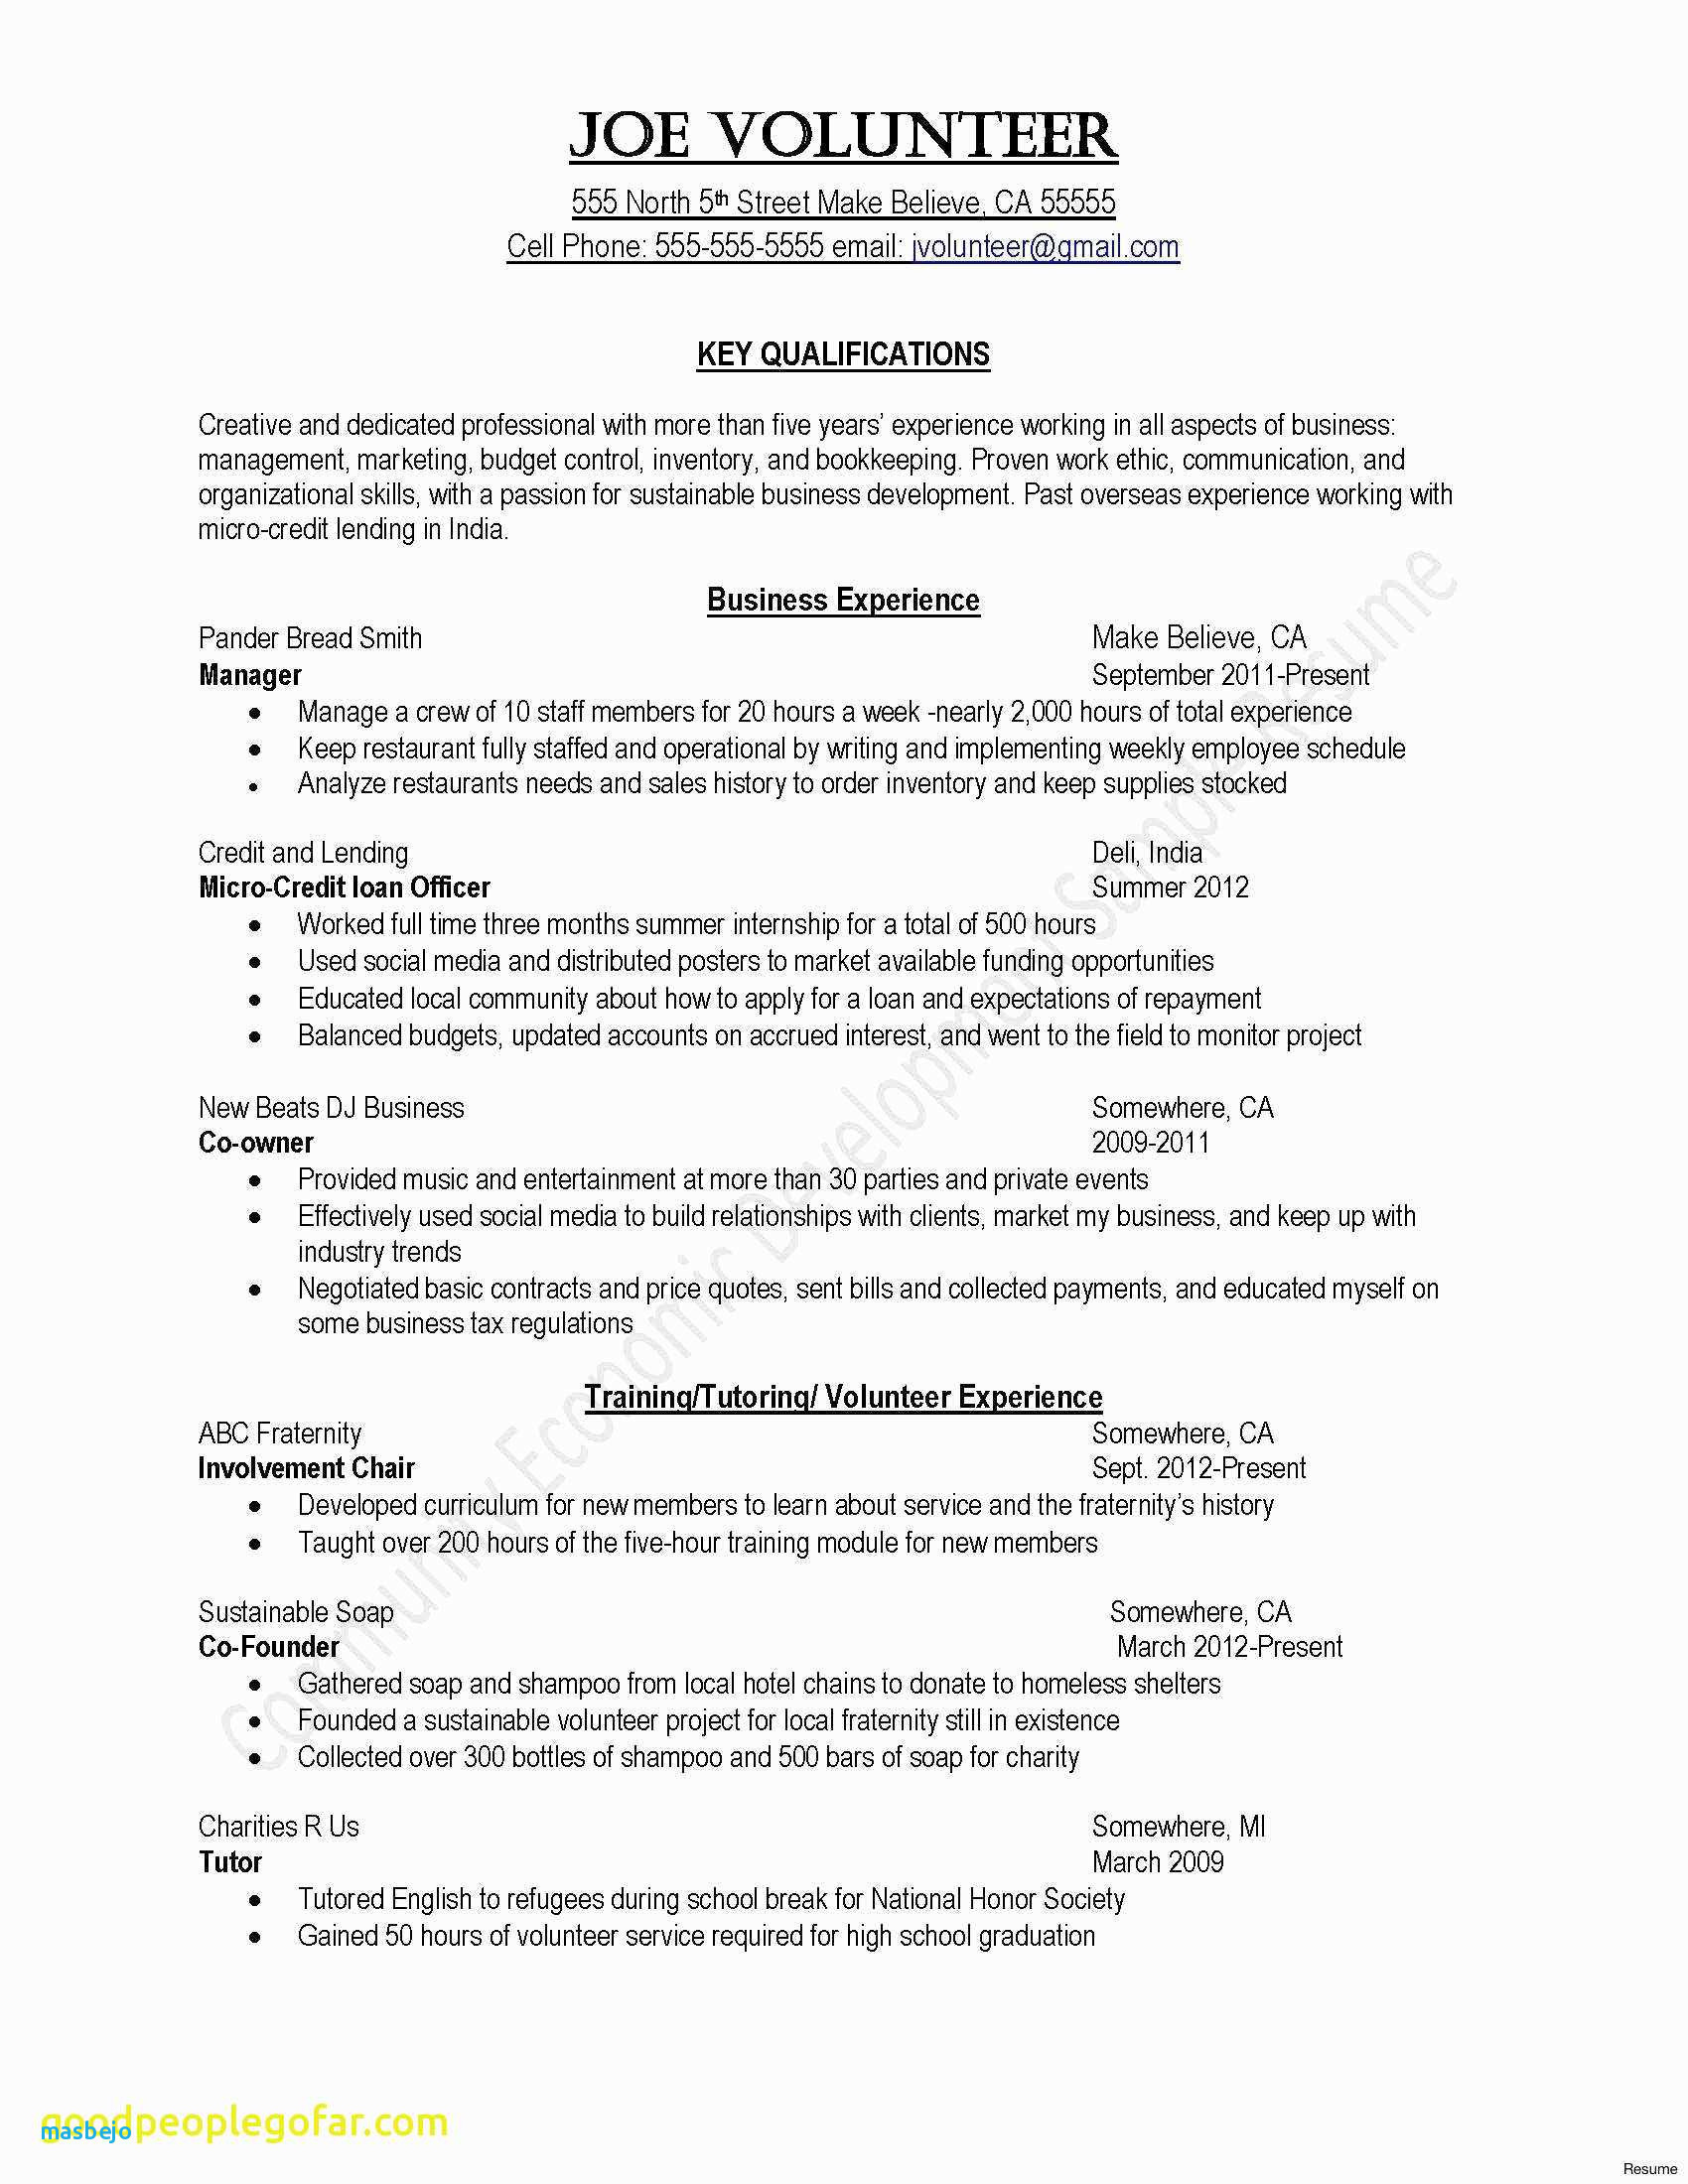 ballet resume template example-Dance Resume Template Grapher Resume Sample Beautiful Resume Quotes 0d Aurelianmg 12-c